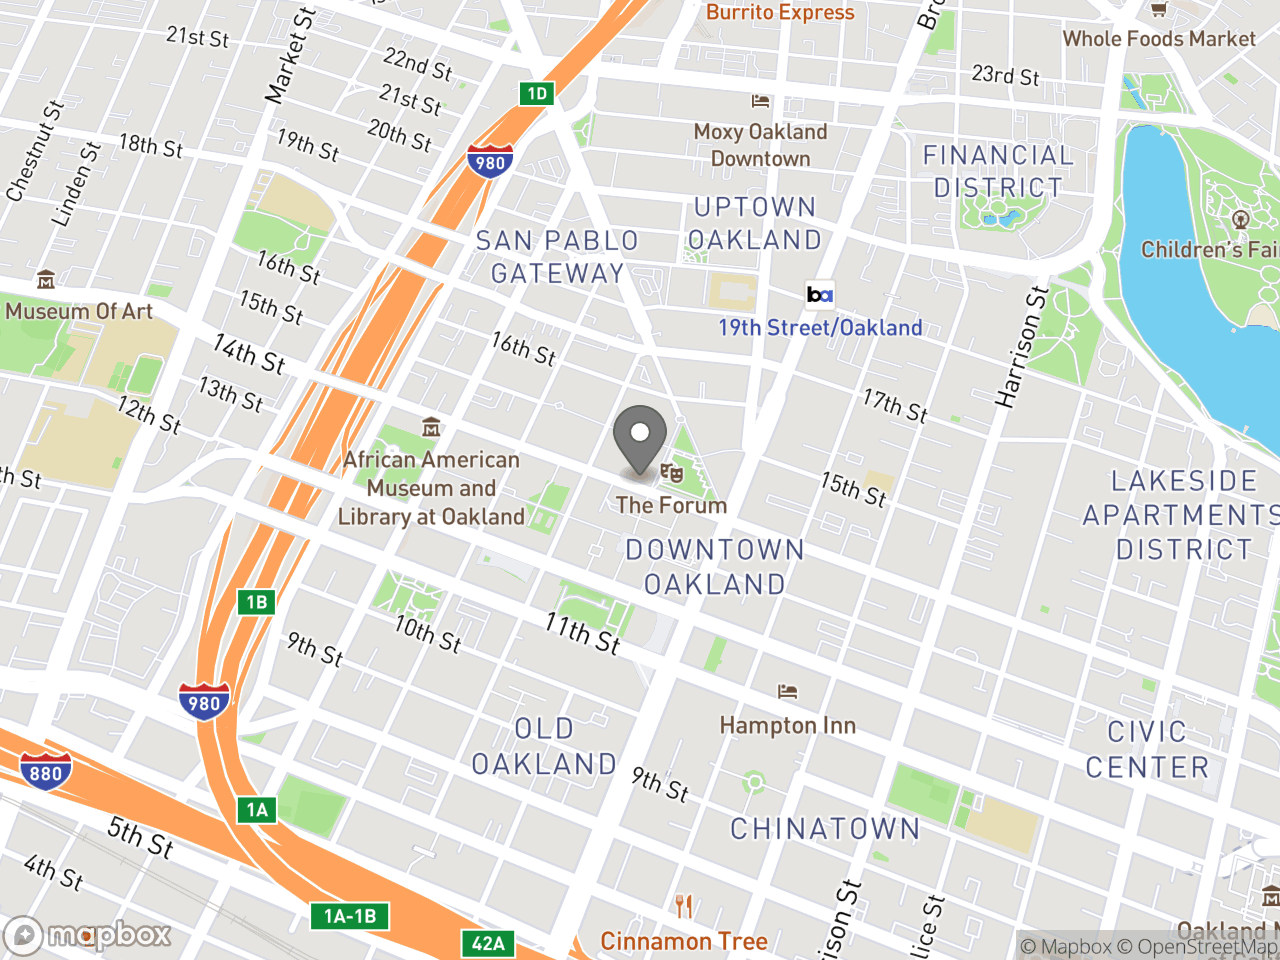 Map location for Mayor's Commission on Persons with Disabilities, April 15, 2019, located at 1 Frank H Ogawa Plaza in Downtown Oakland, CA 94612